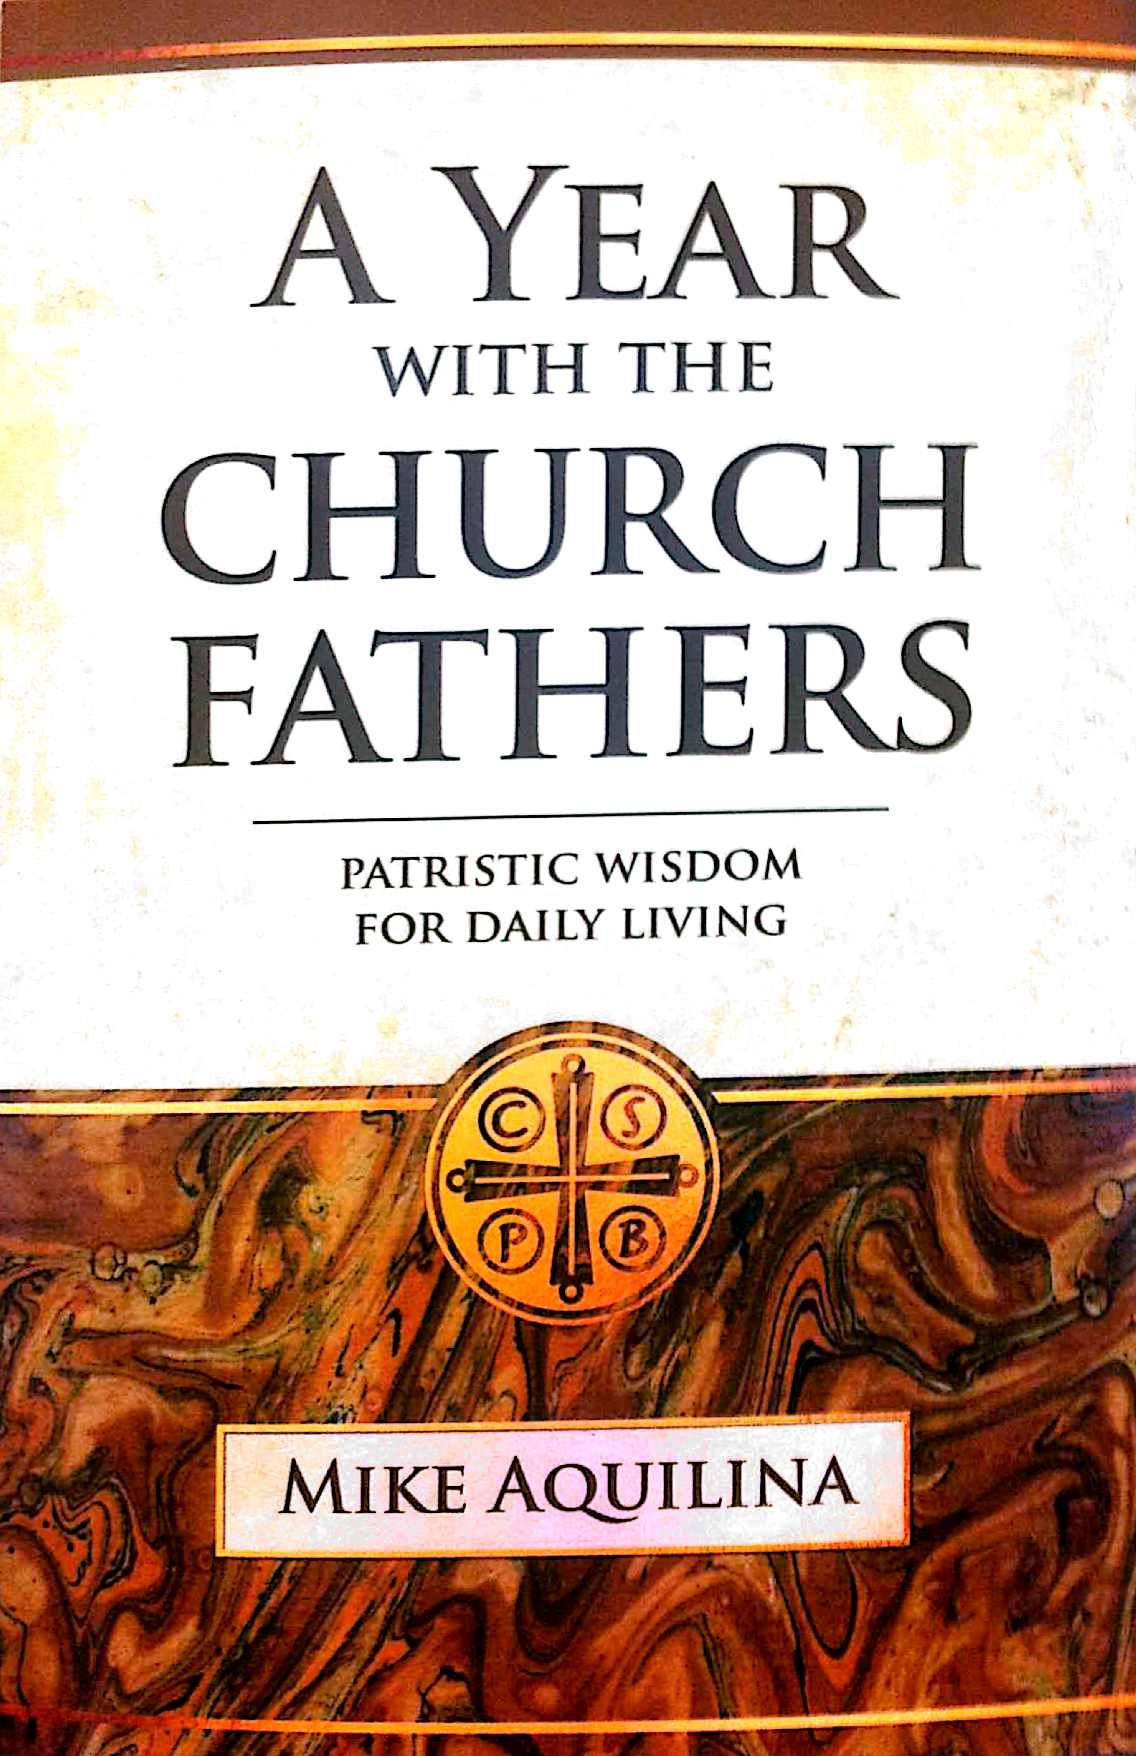 A Year with the Church Fathers: Patristic Wisdom for Daily Living / Mike Aquilina